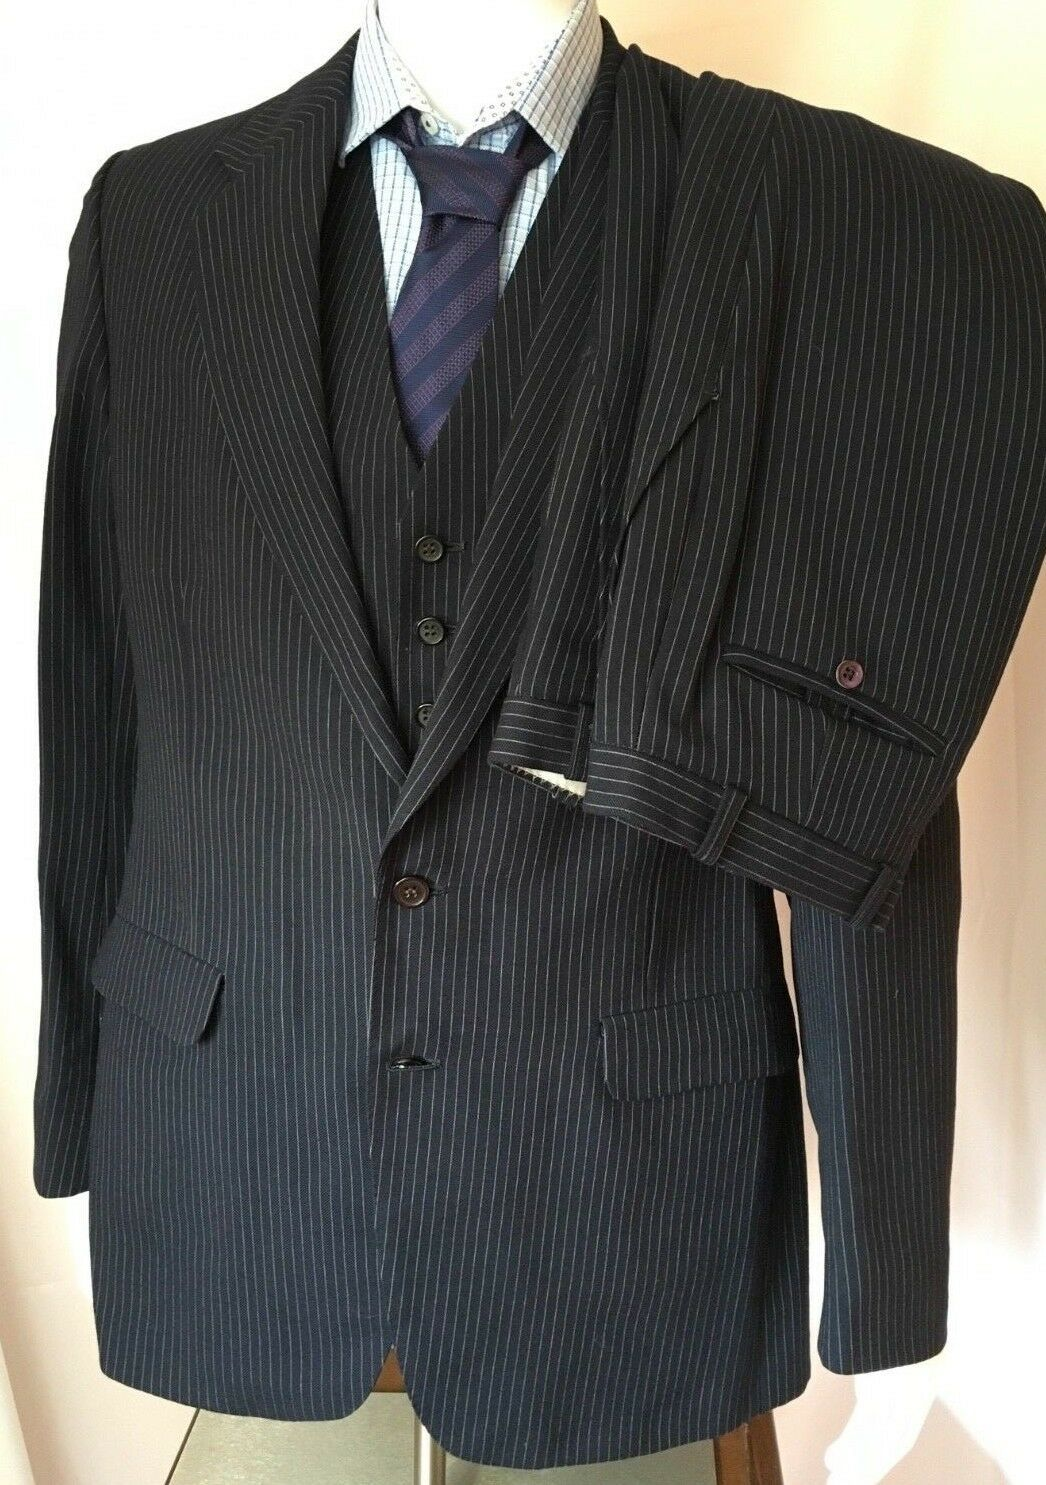 Hardy Amies 3 piece navy pinstriped wool suit 32x35 40 long